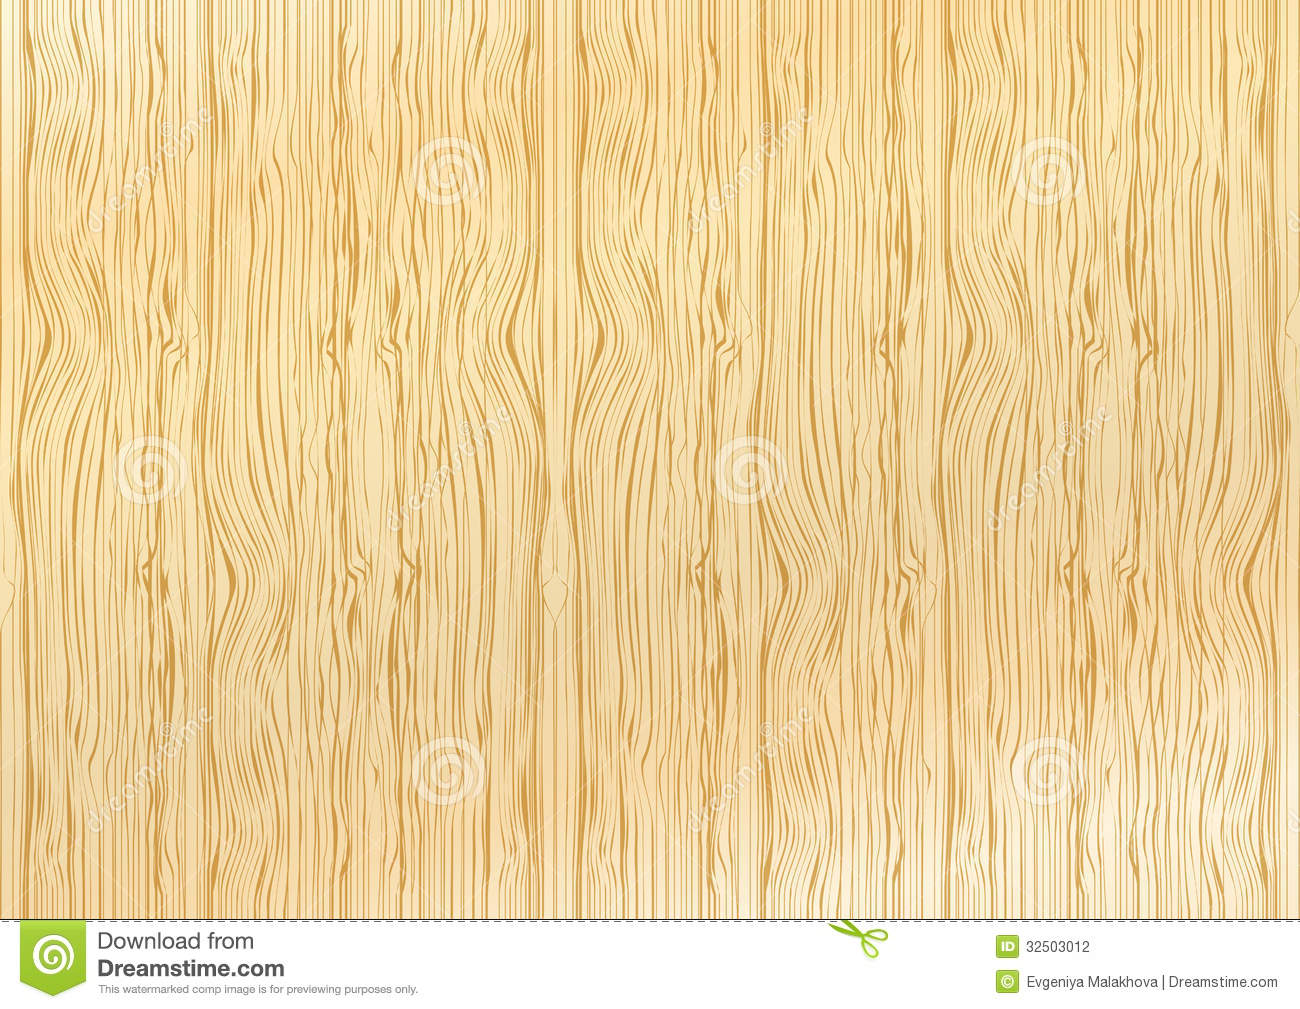 Wooden background stock photography image 32503012 - Wood design image ...